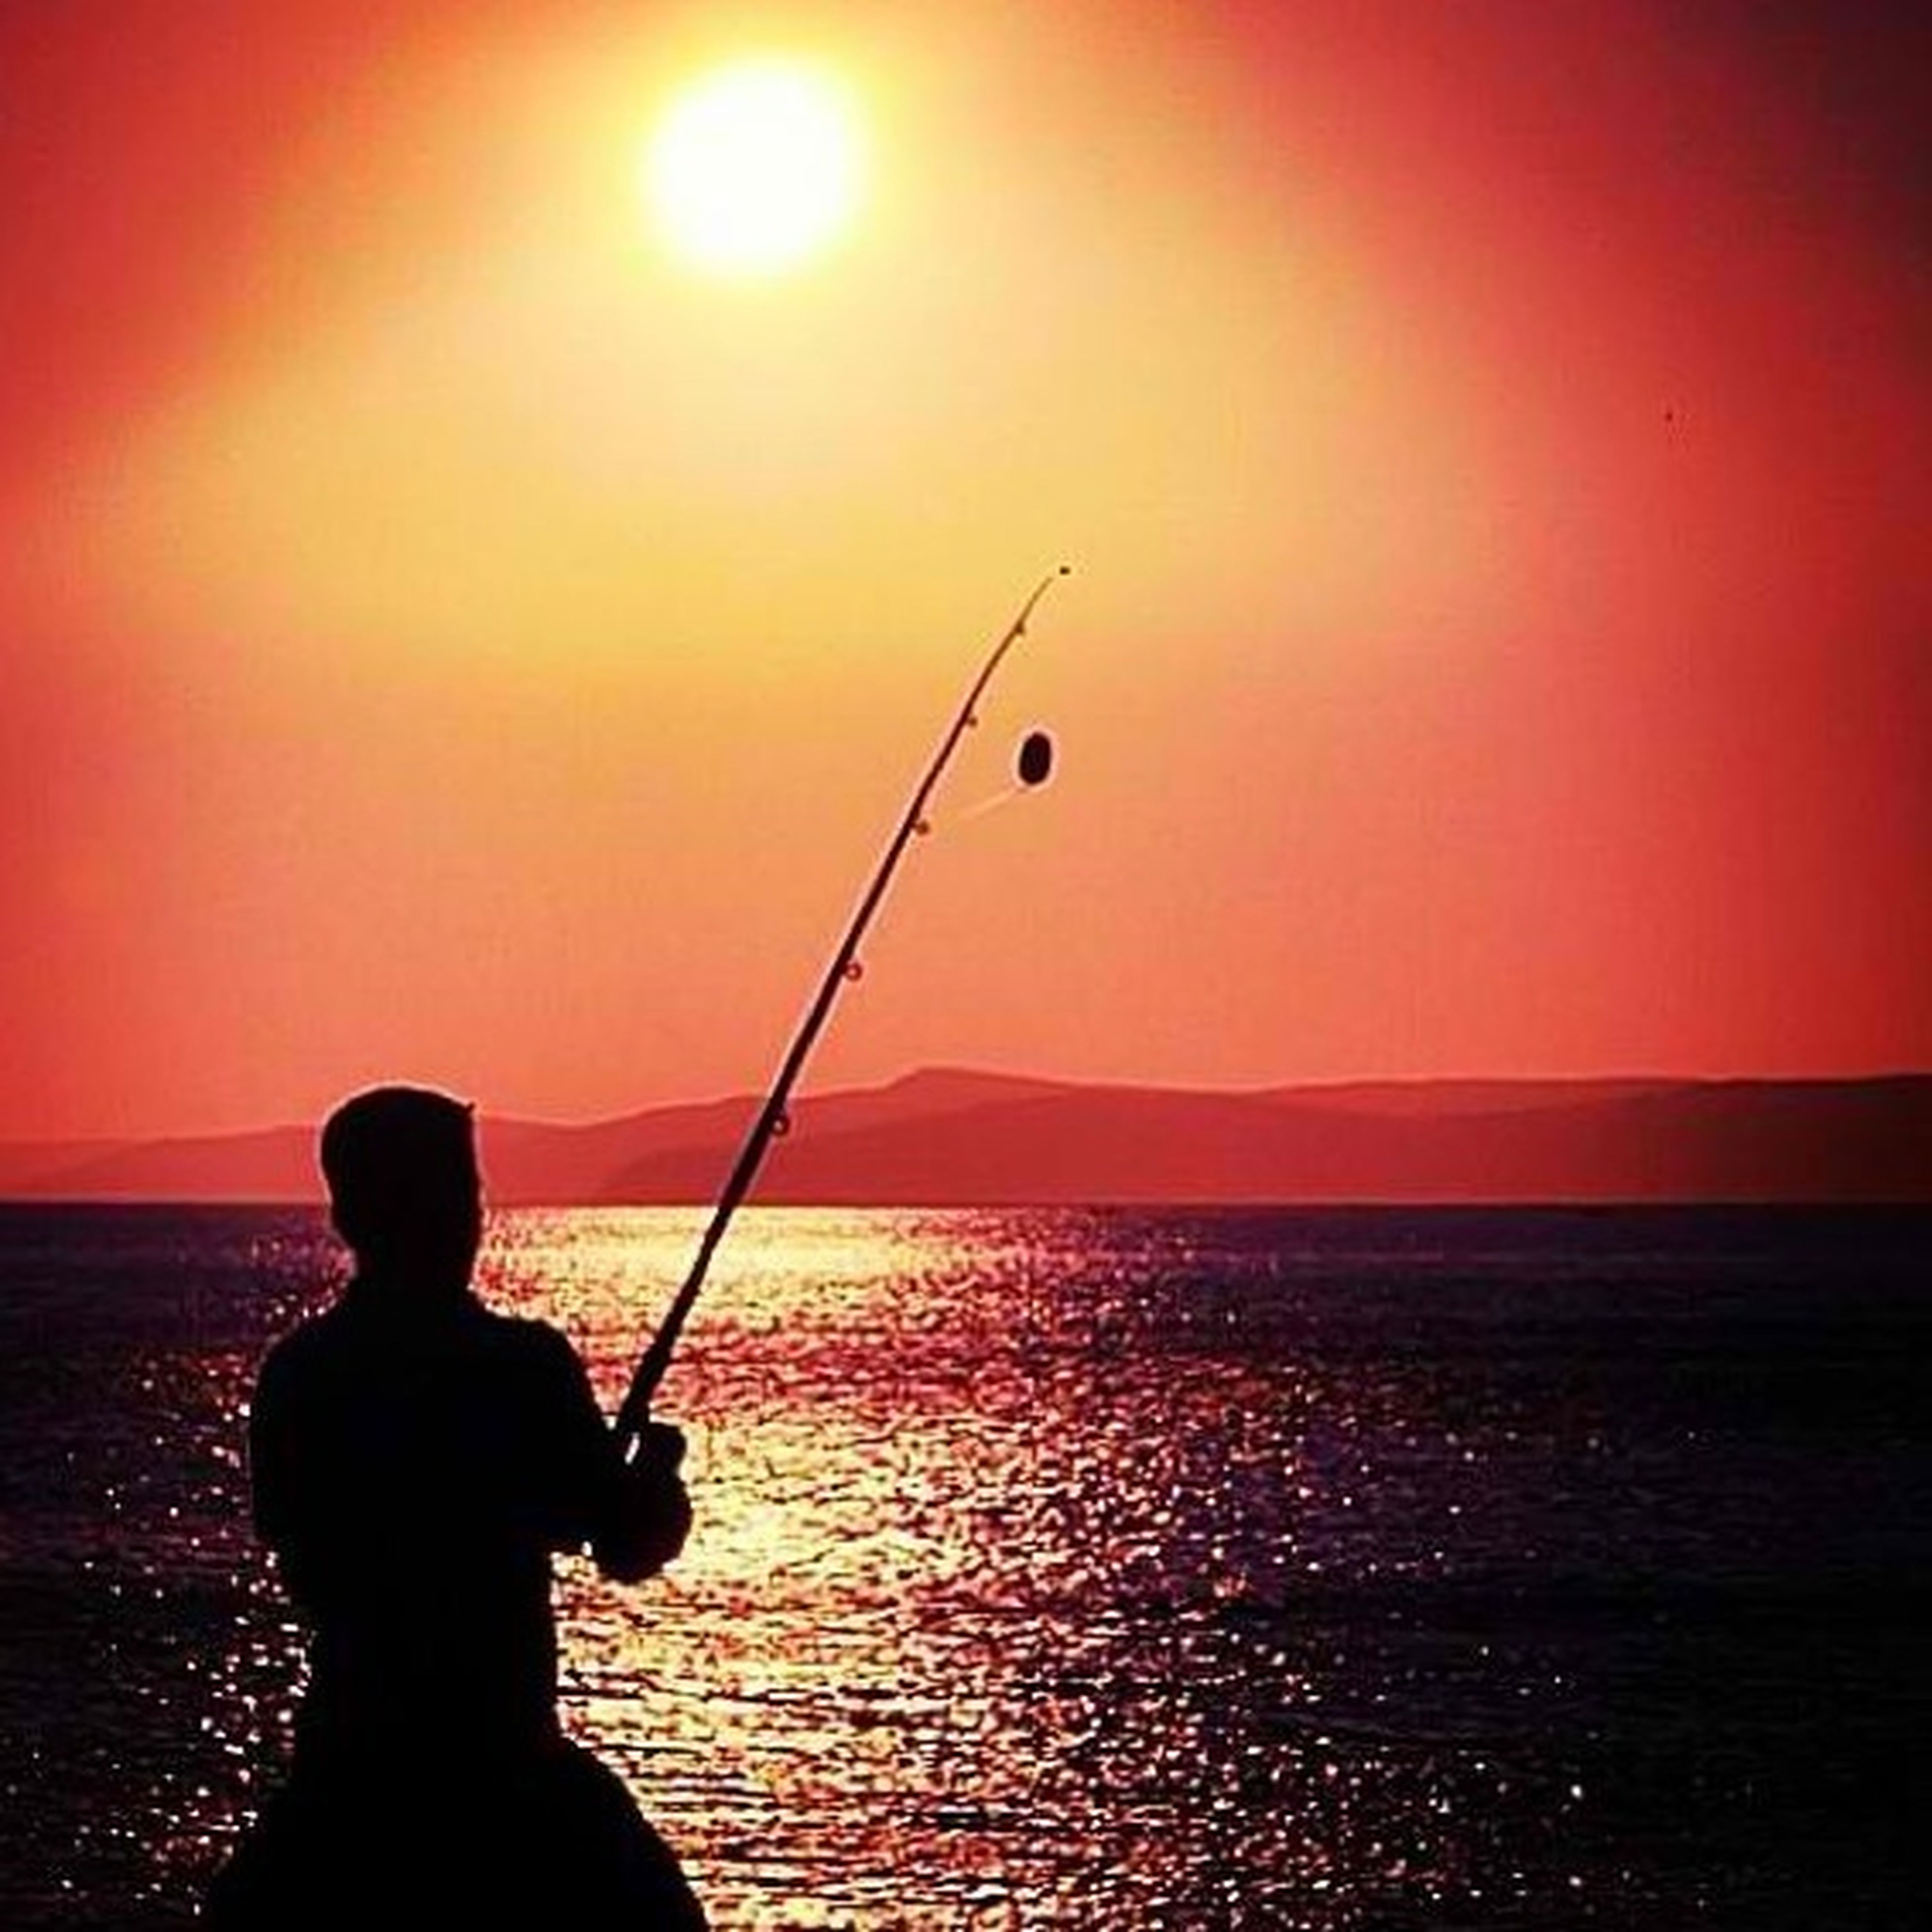 sunset, sun, sea, silhouette, horizon over water, water, scenics, beauty in nature, orange color, tranquil scene, leisure activity, lifestyles, tranquility, idyllic, men, nature, sky, fishing rod